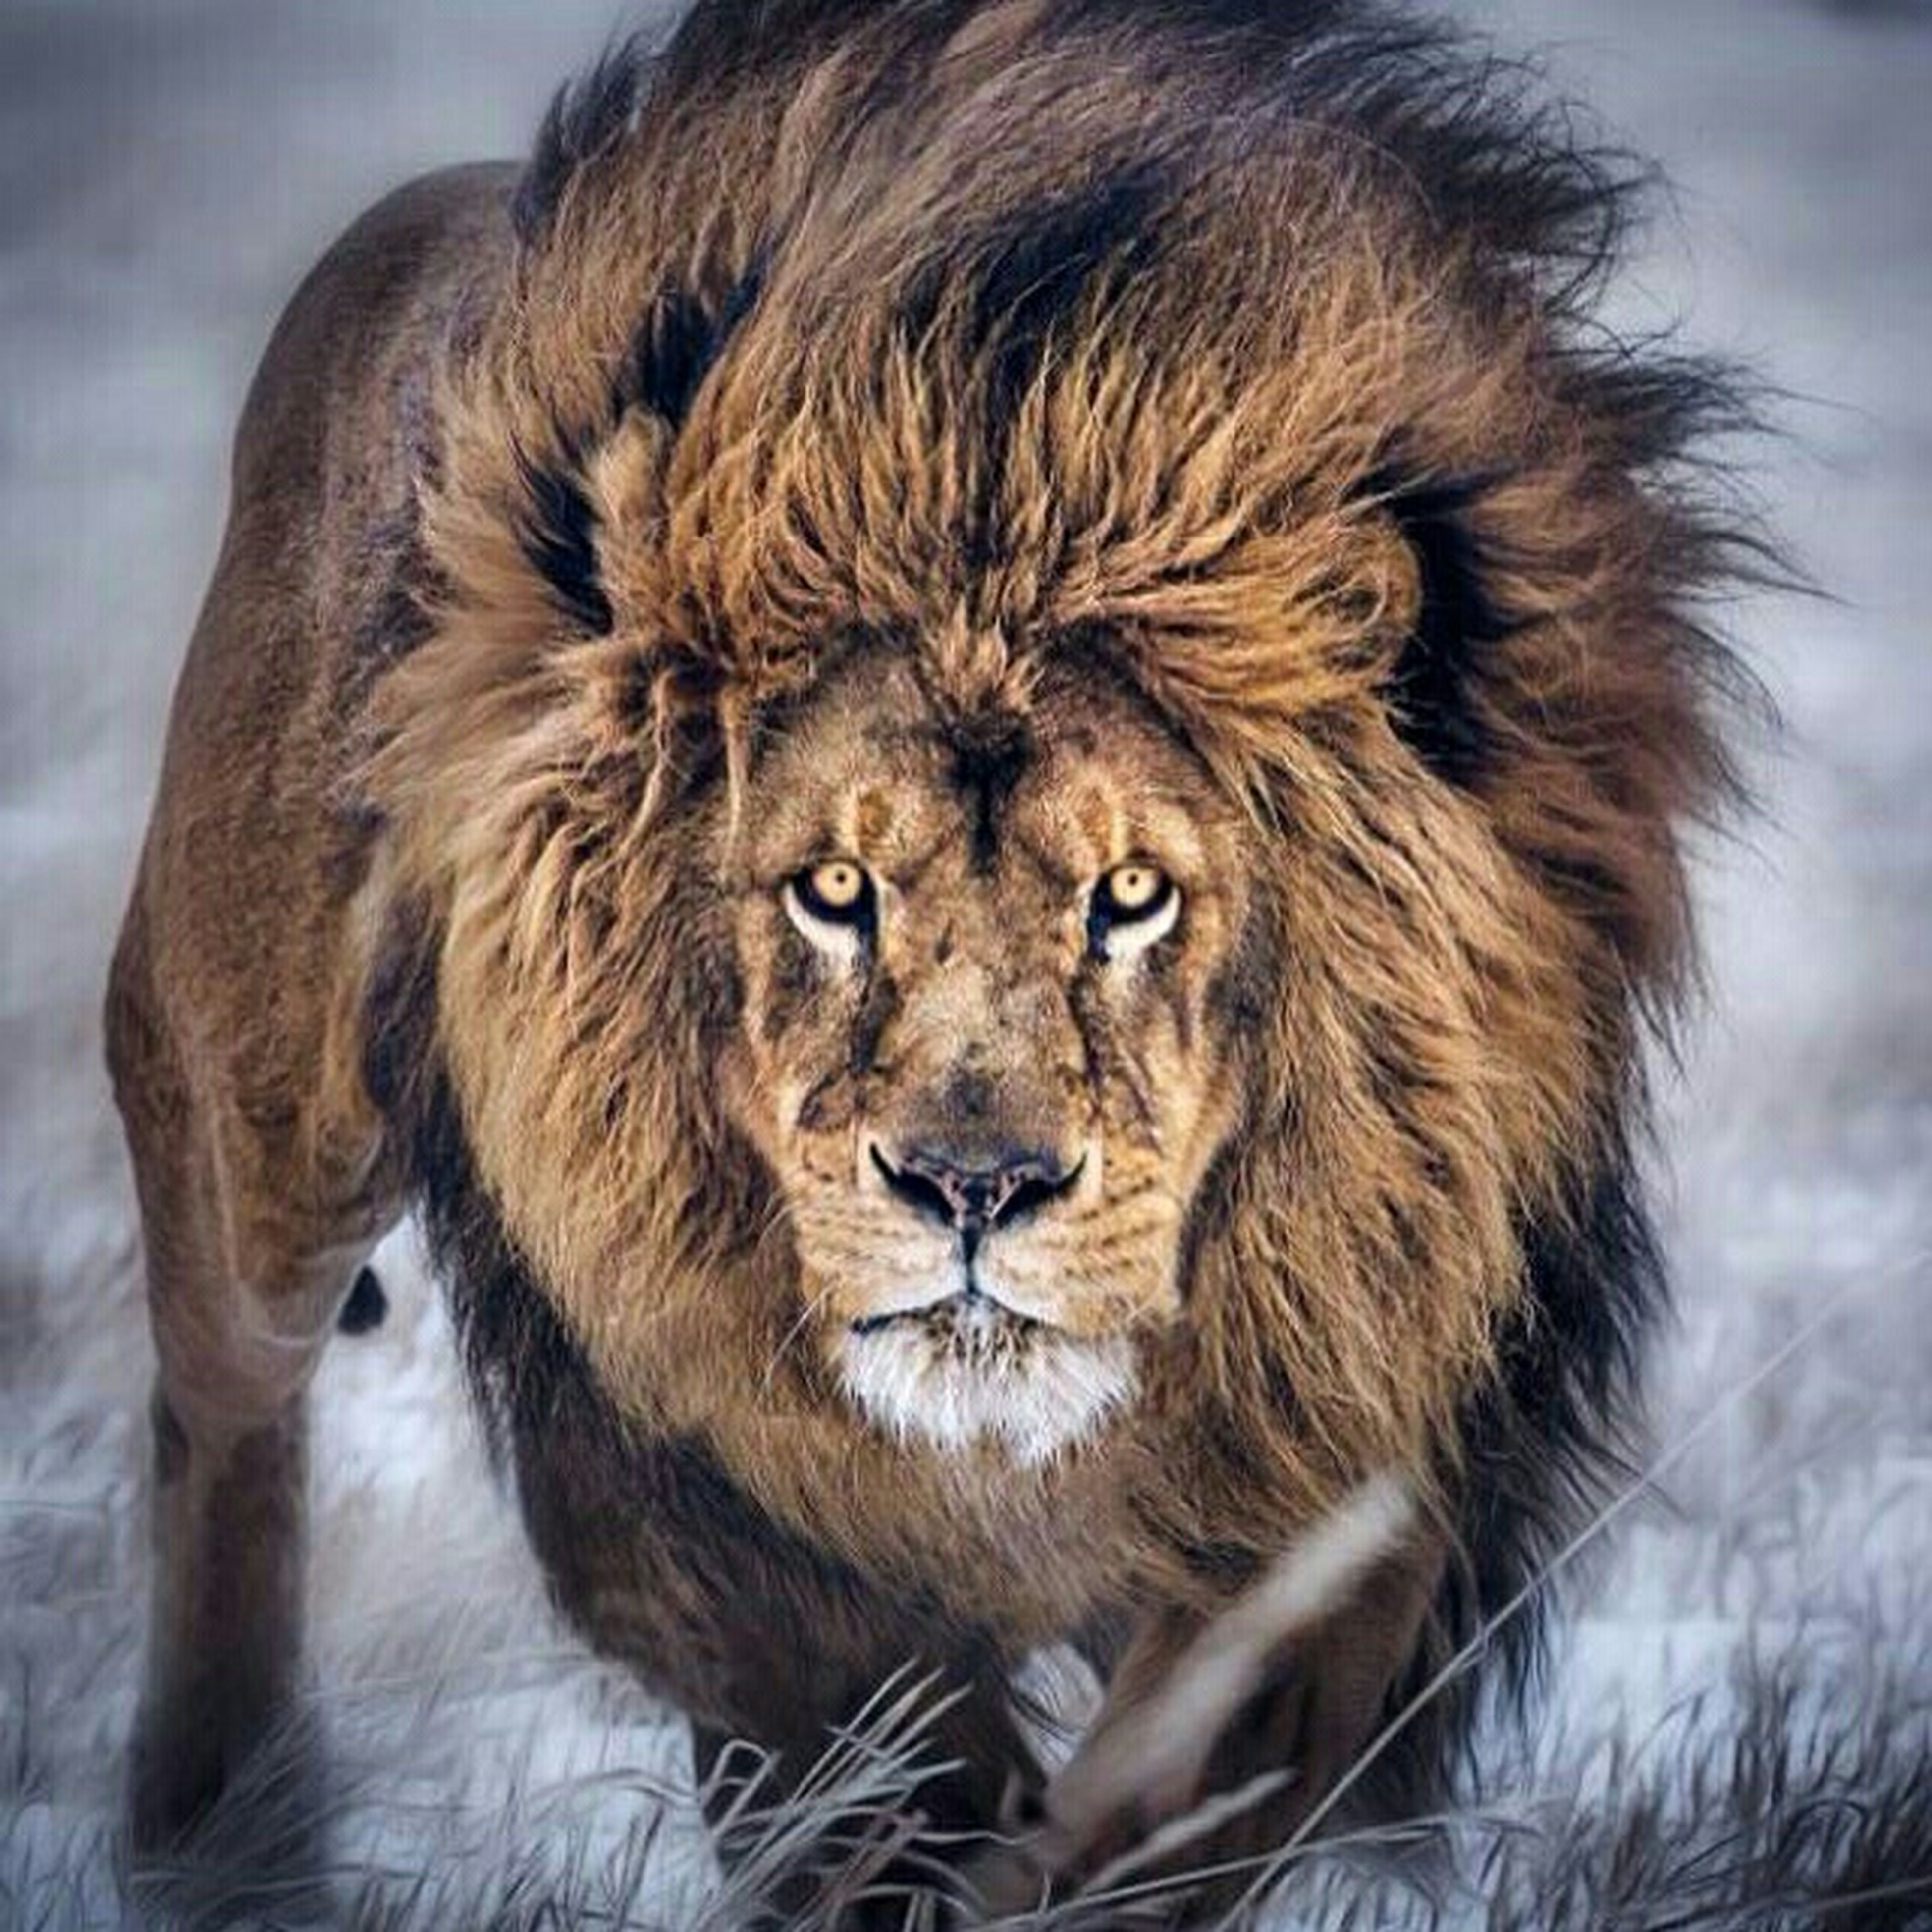 animal themes, one animal, mammal, wildlife, portrait, animals in the wild, animal head, looking at camera, animal hair, close-up, animal body part, focus on foreground, lion - feline, zoology, front view, no people, outdoors, domestic animals, day